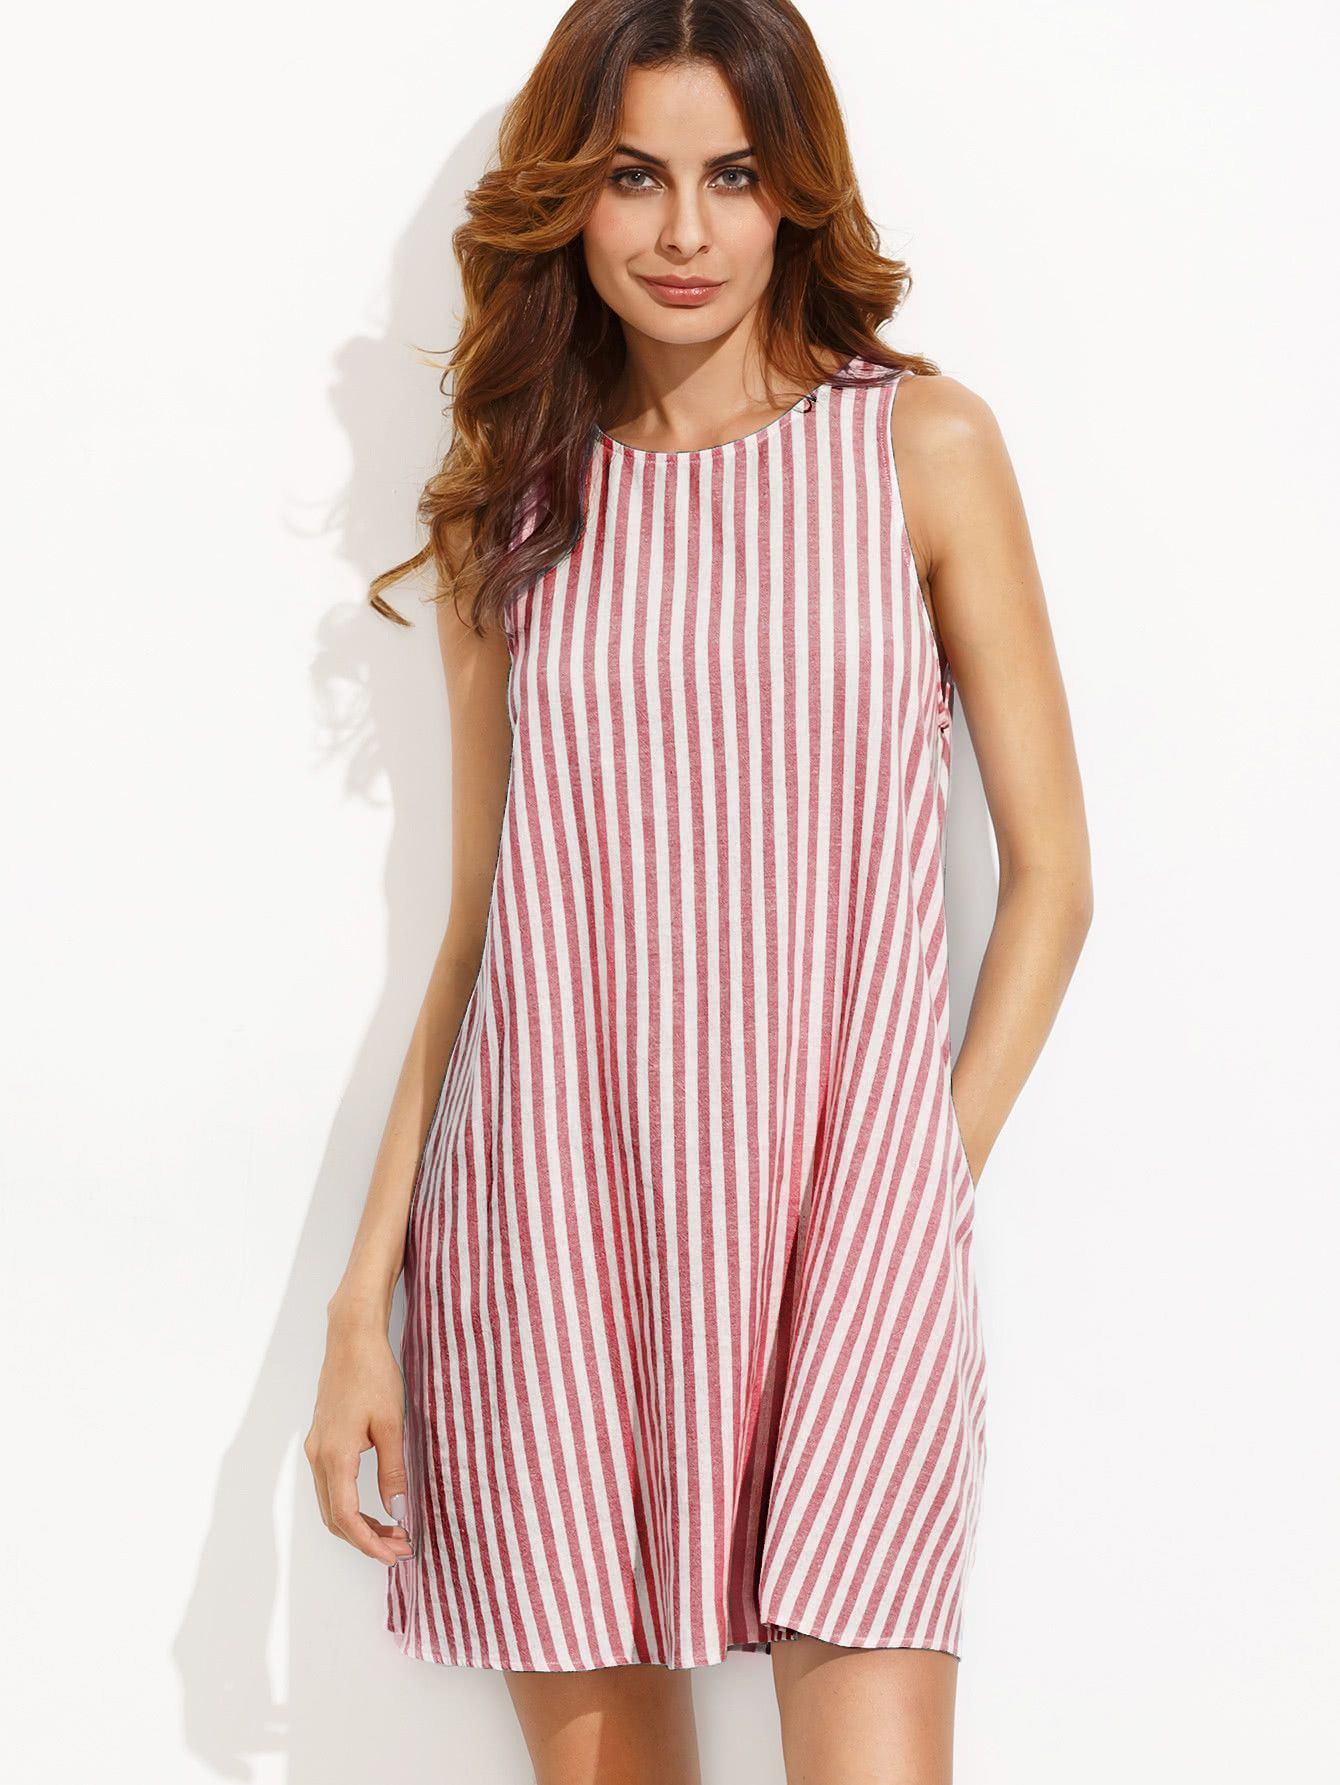 f55390de52f7 Material: 100% Cotton Color: Red Pattern Type: Striped Neckline: Round Neck  Style: Vacation, Casual Type: Tank Silhouette: A Line Decoration: Button,  ...